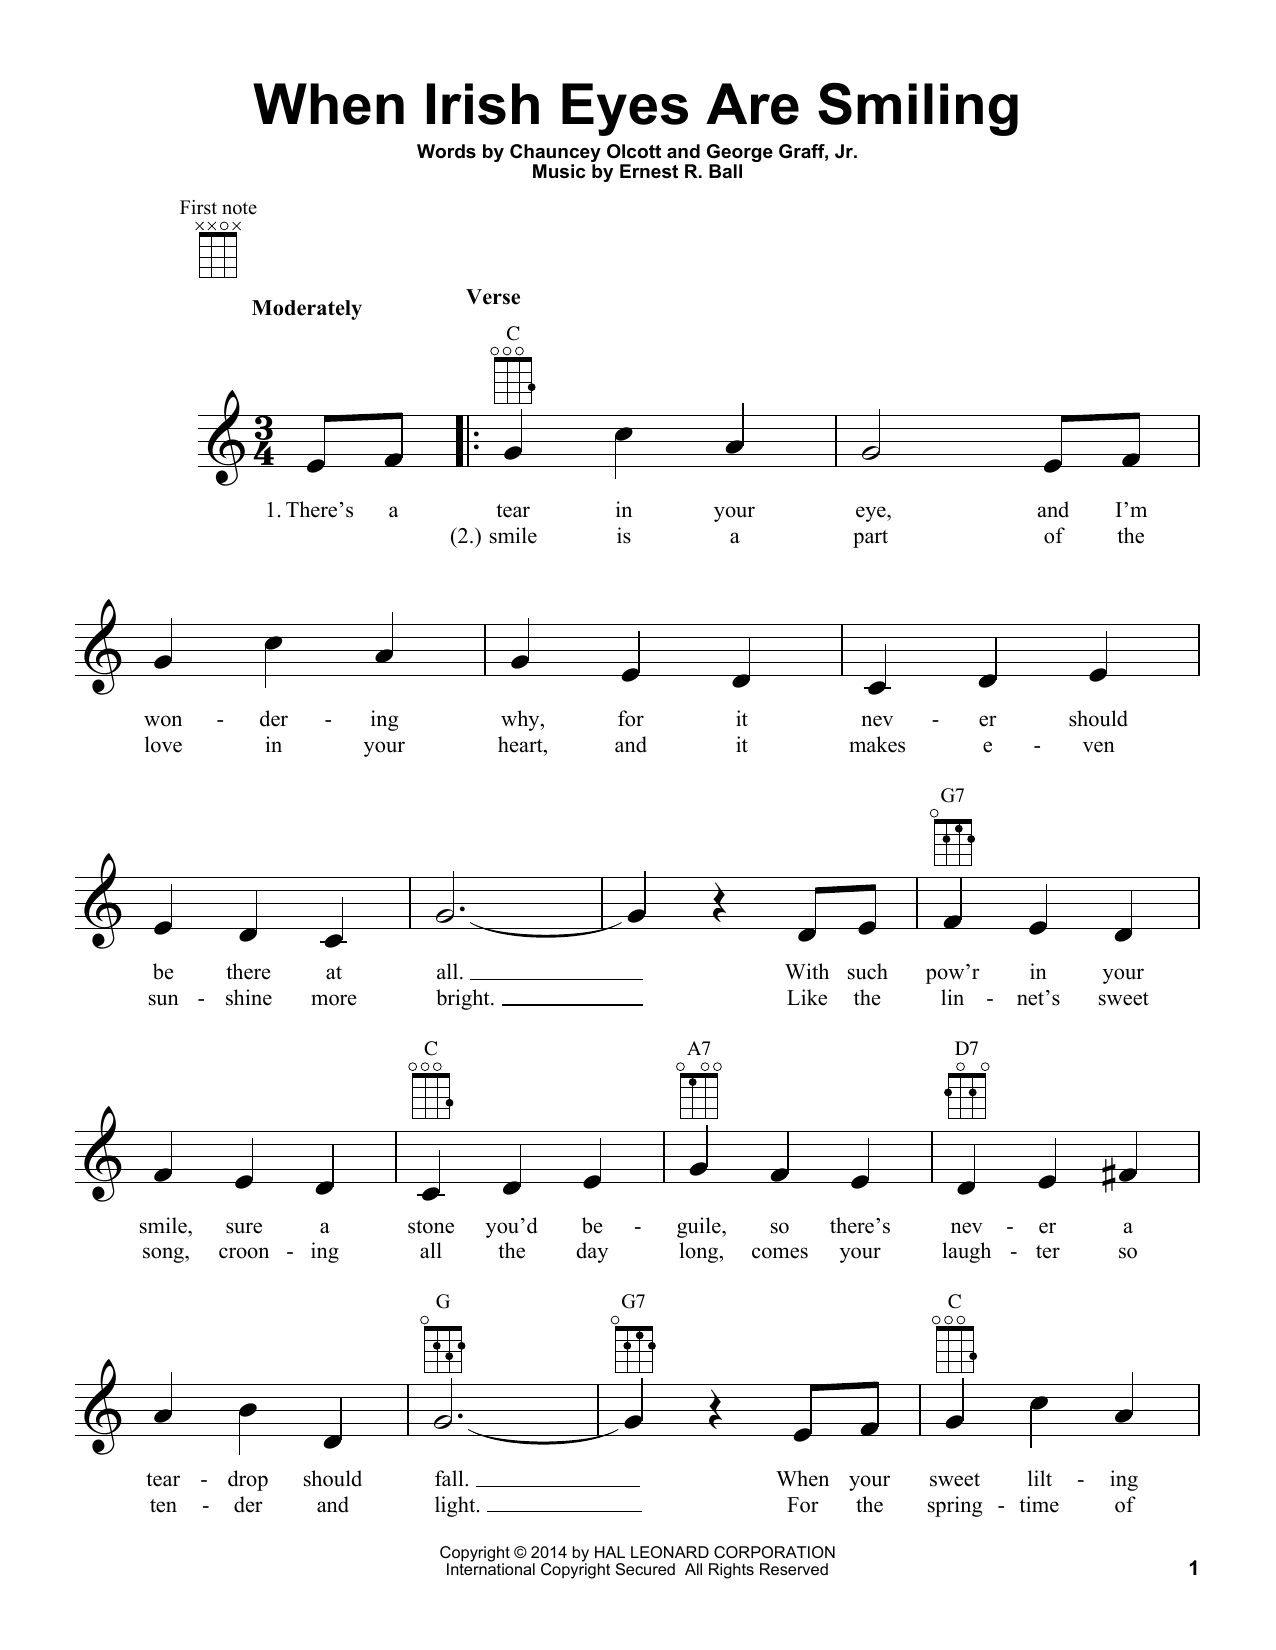 When Irish Eyes Are Smiling Sheet Music